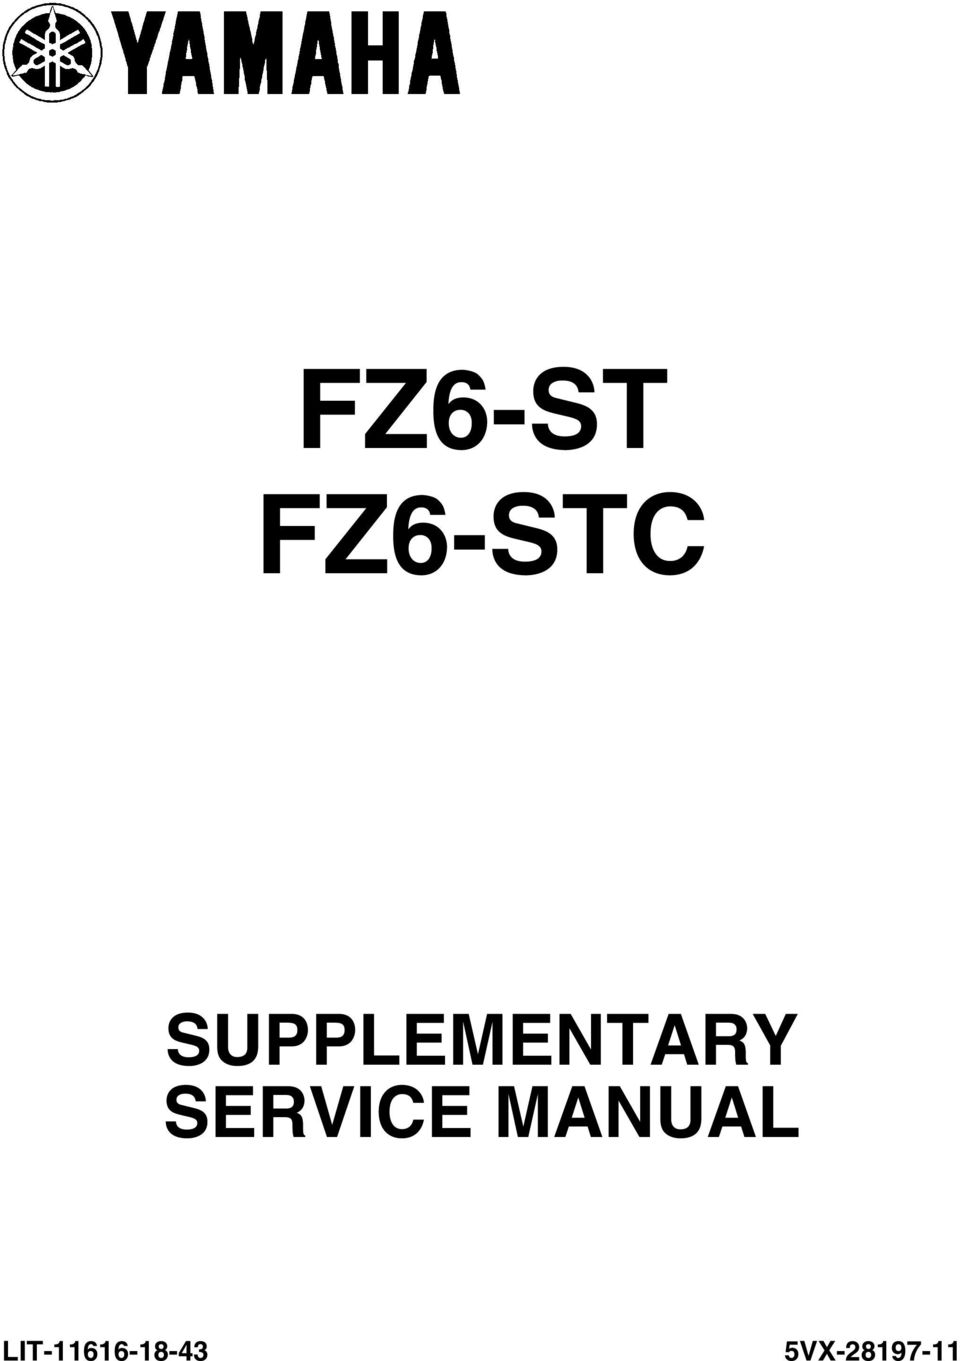 medium resolution of 2 foreword this supplementary service manual has been prepared to introduce new service and data for the fz6 st fz6 stc for complete service information